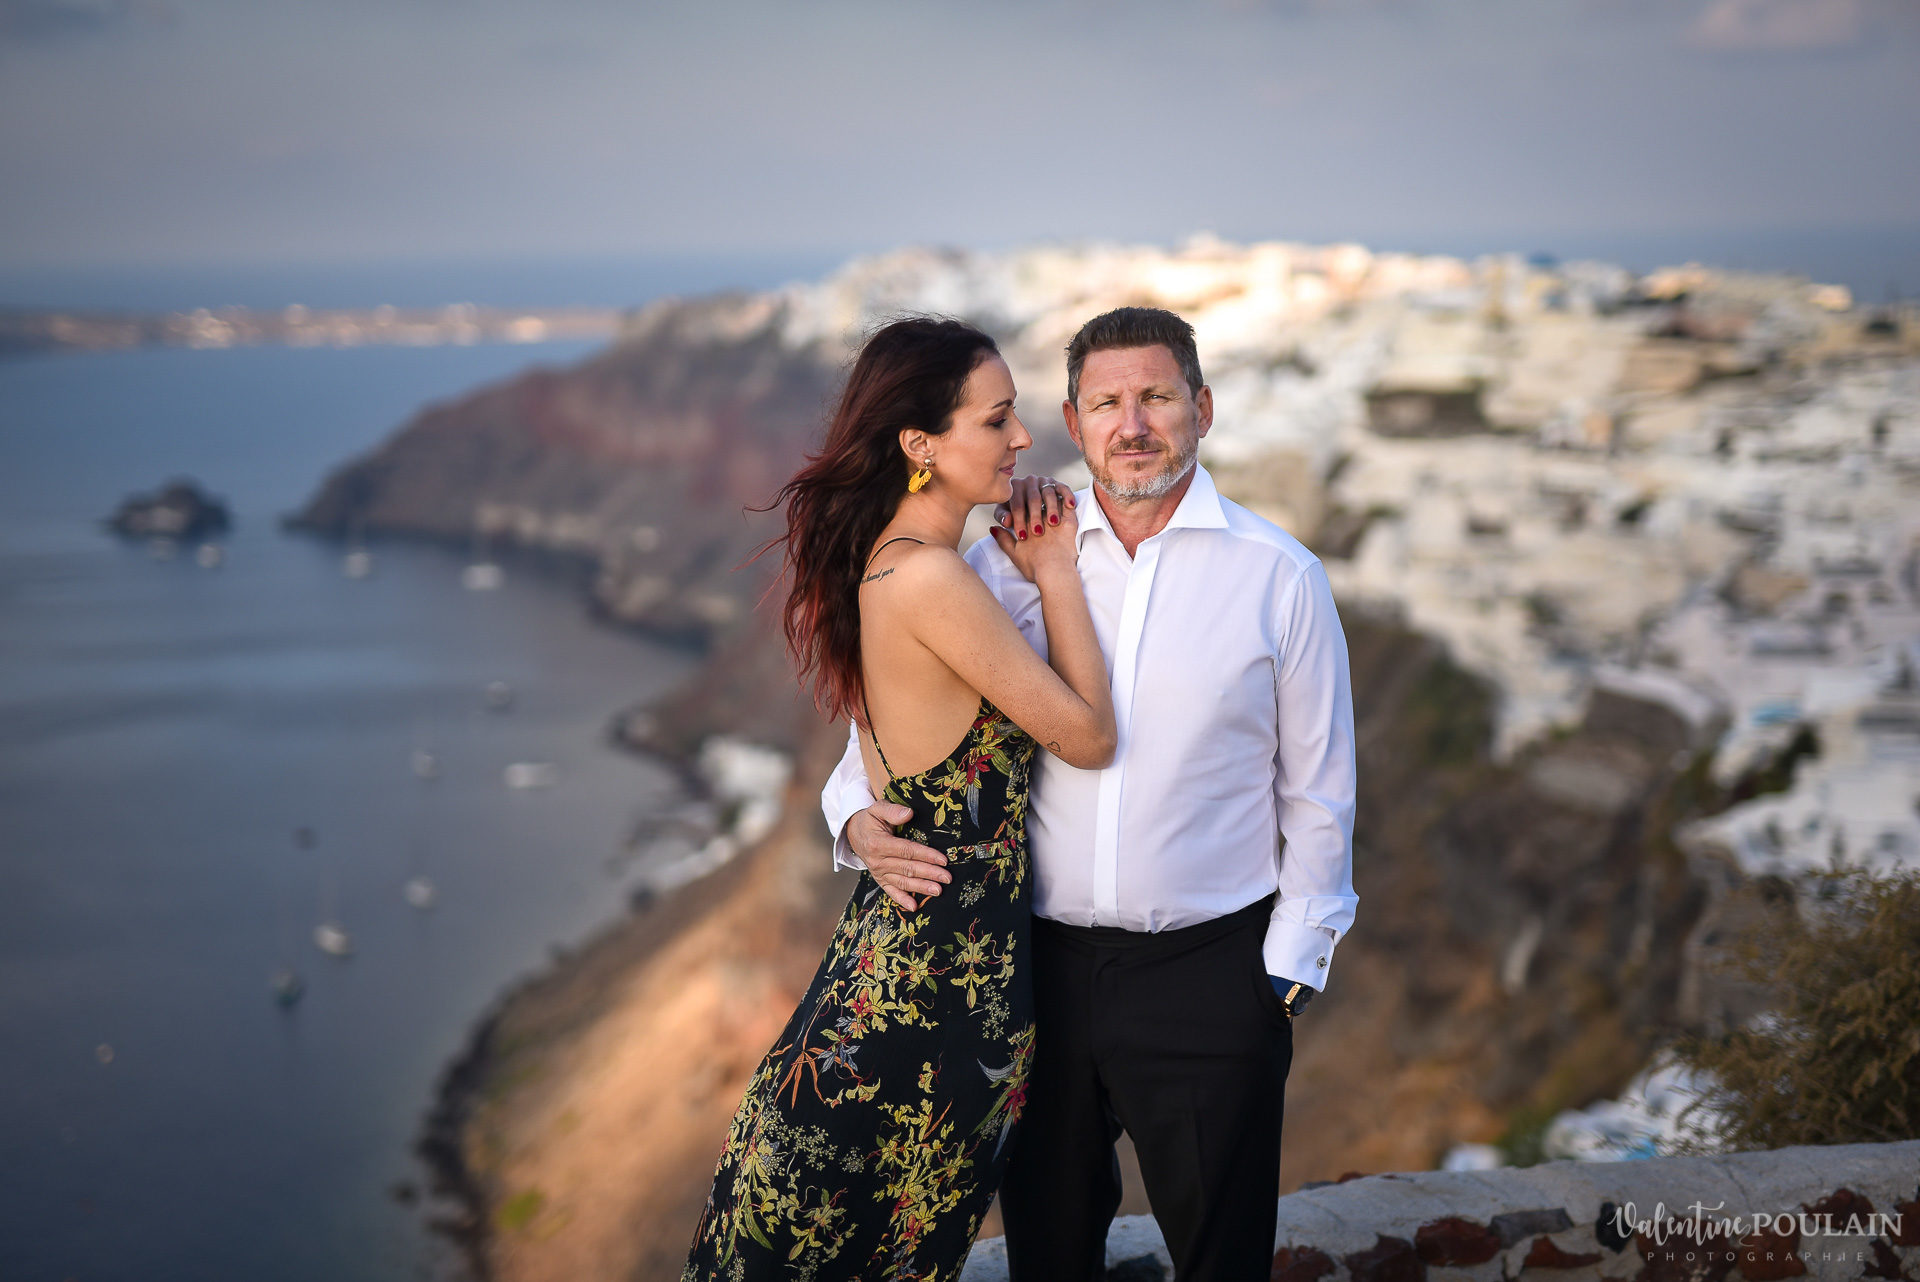 Shooting photo day after Santorin - Valentine Poulain calmes